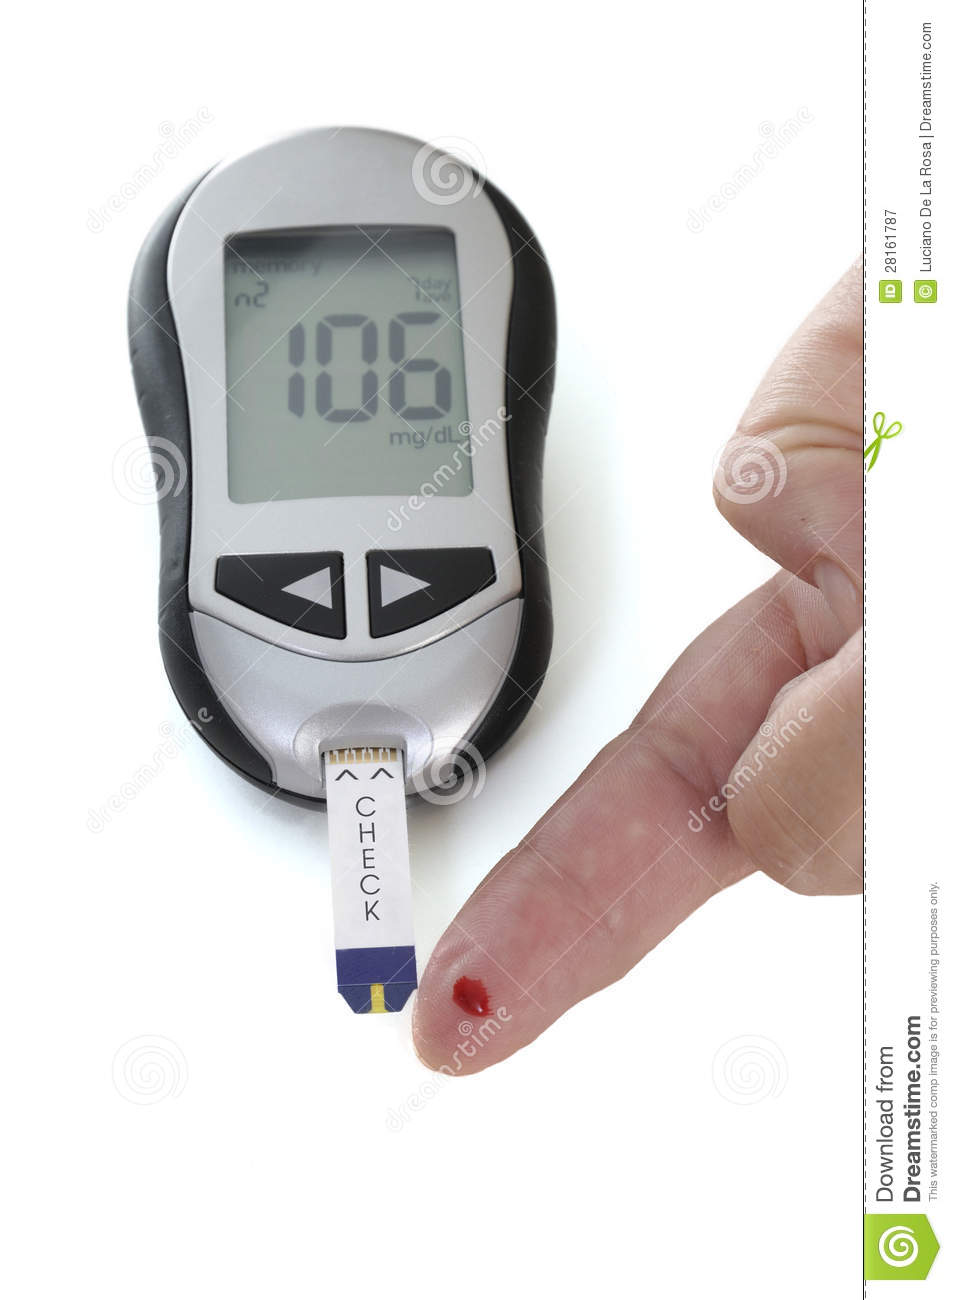 Meter Reading Practice Test : Glucometer with a reading displayed royalty free